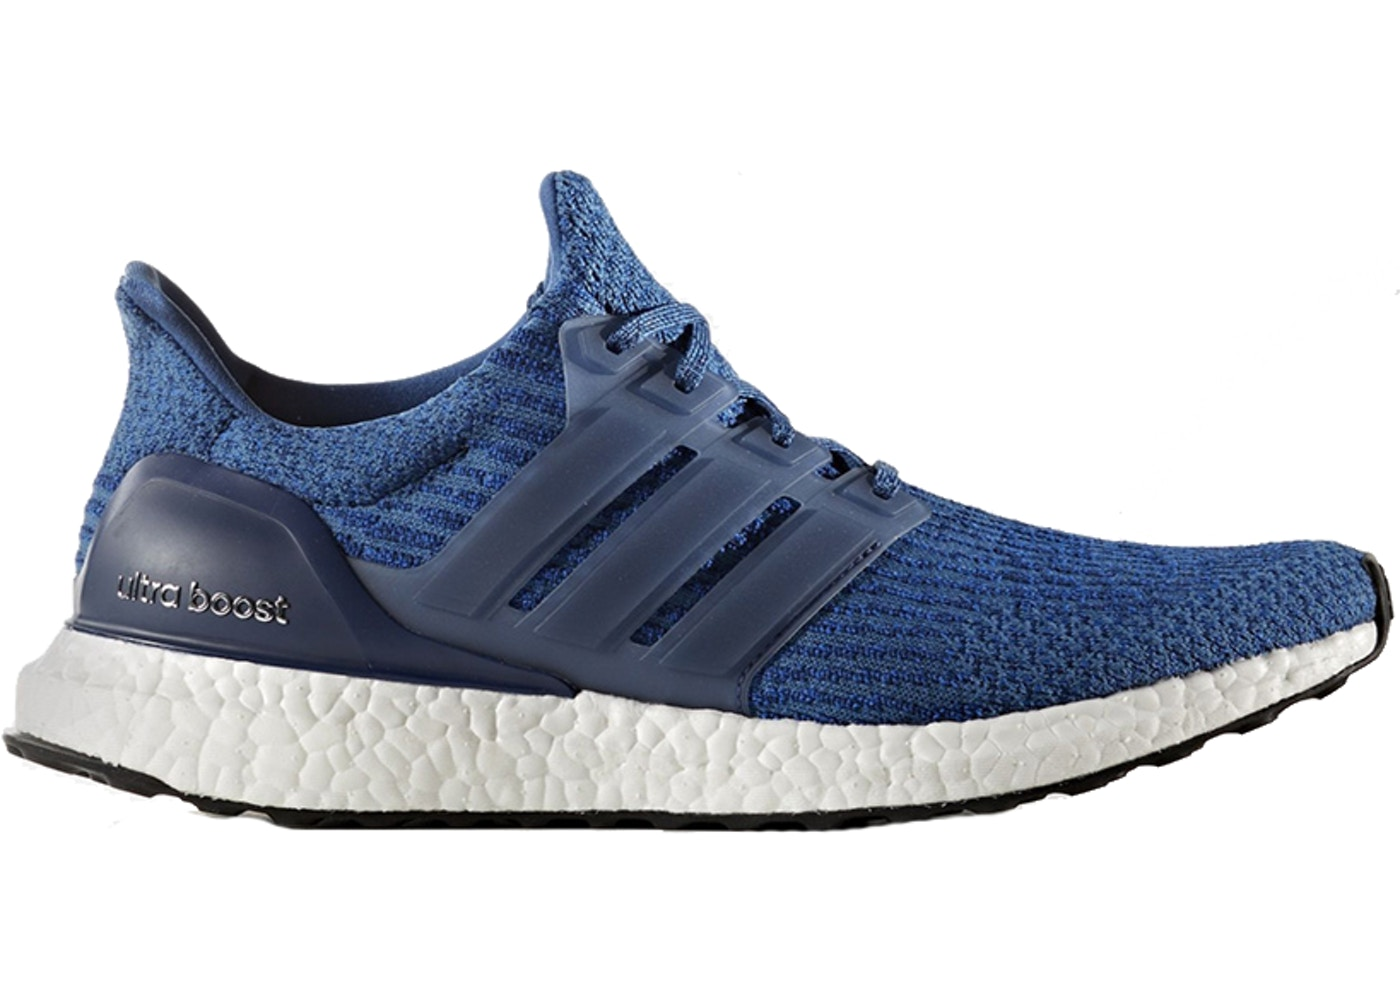 3c492f36 adidas Ultra Boost 3.0 Royal Blue - BA8844